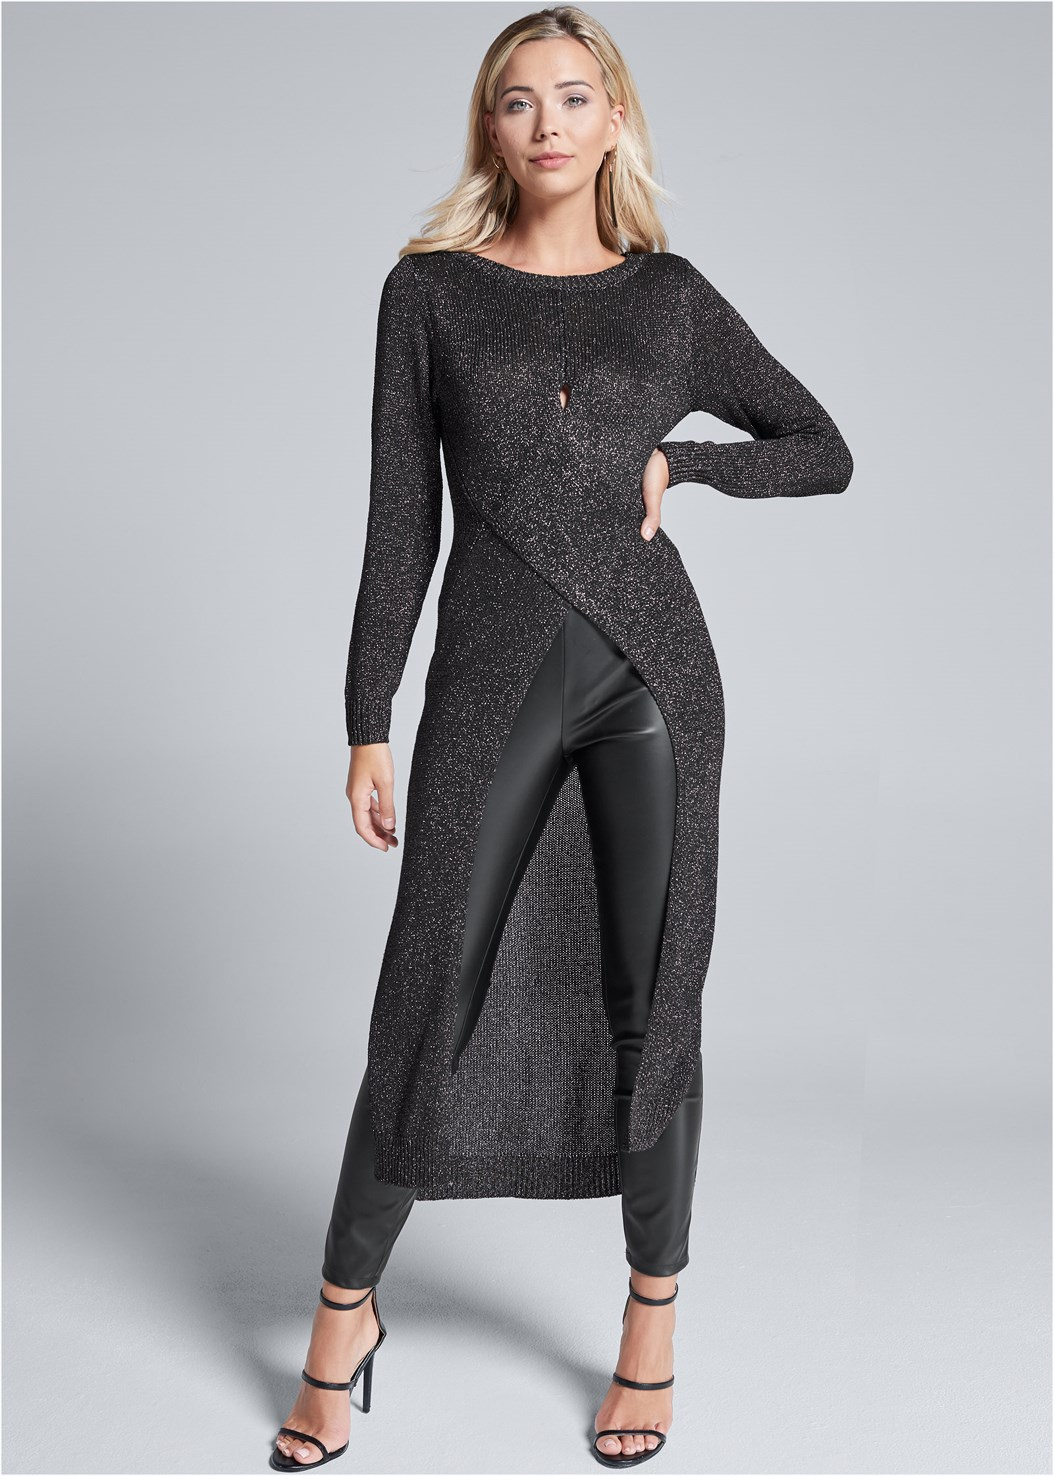 Cross Front Maxi Sweater,Mid Rise Full Length Slimming Stretch Jeggings,Faux Leather Leggings,Studded Over The Knee Boots,High Heel Strappy Sandals,Mixed Earring Set,Beaded Hoop Earrings